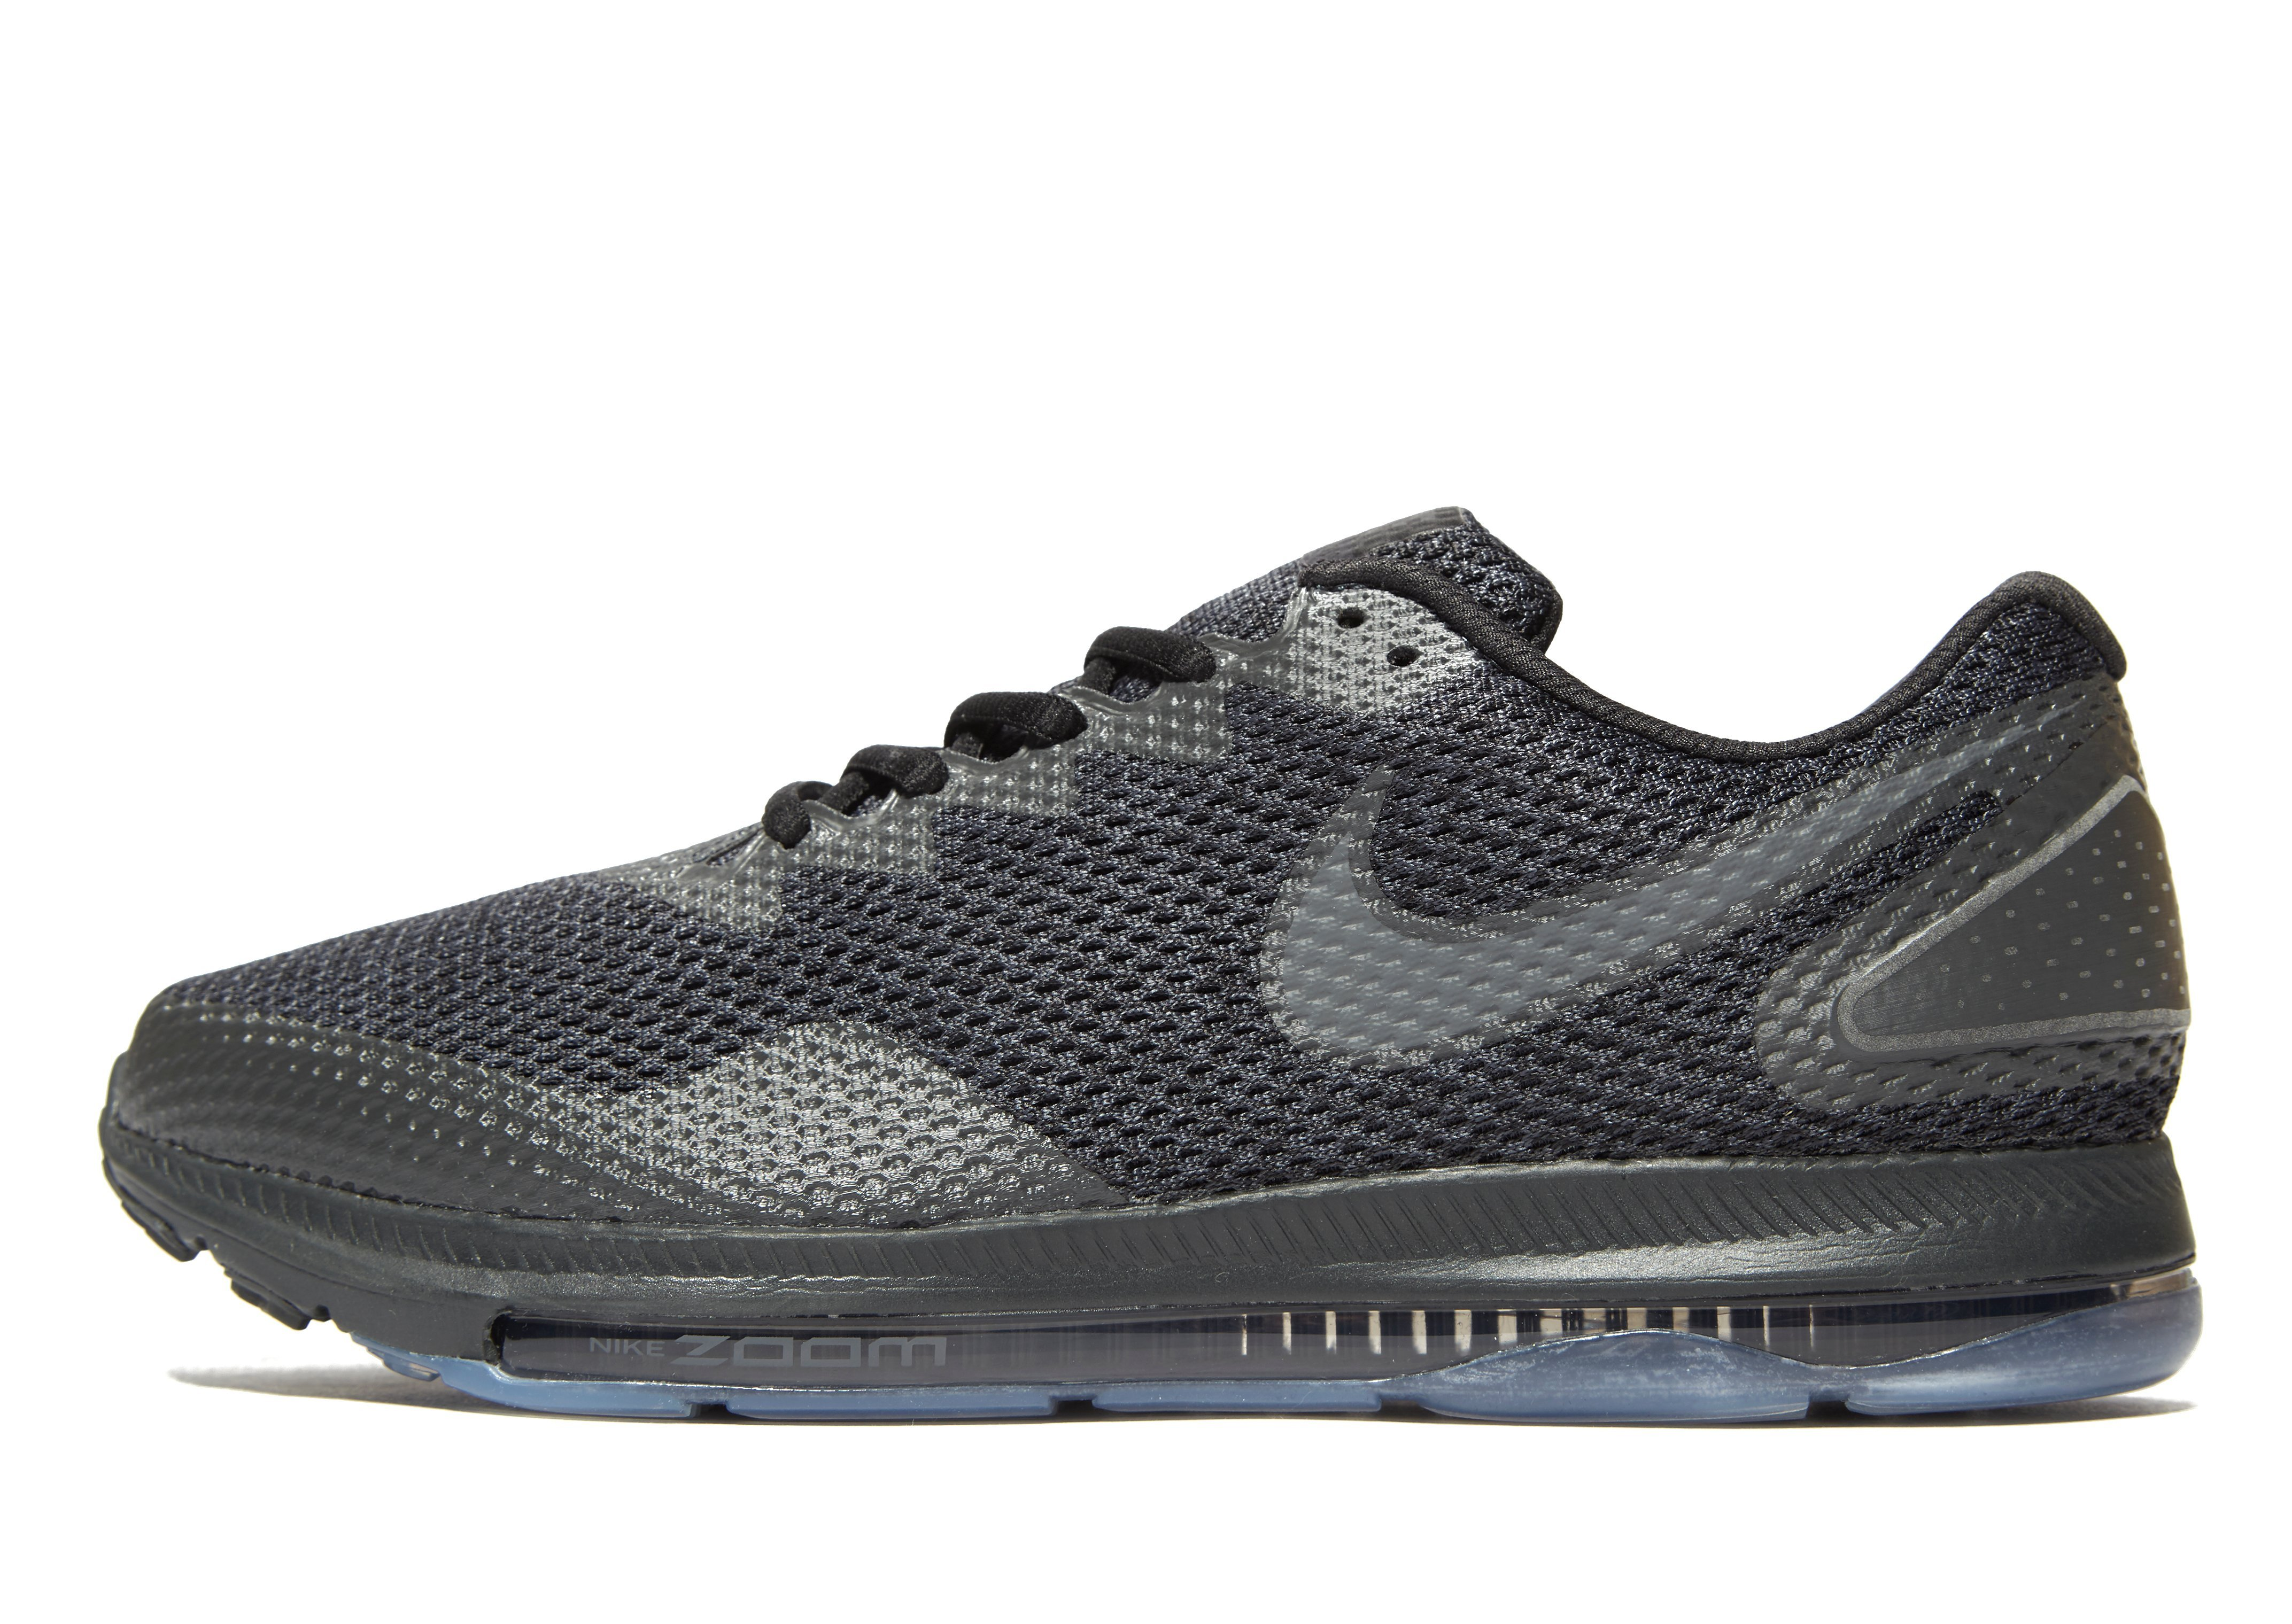 7f125a700ac2f NIKE ZOOM ALL OUT LOW 2